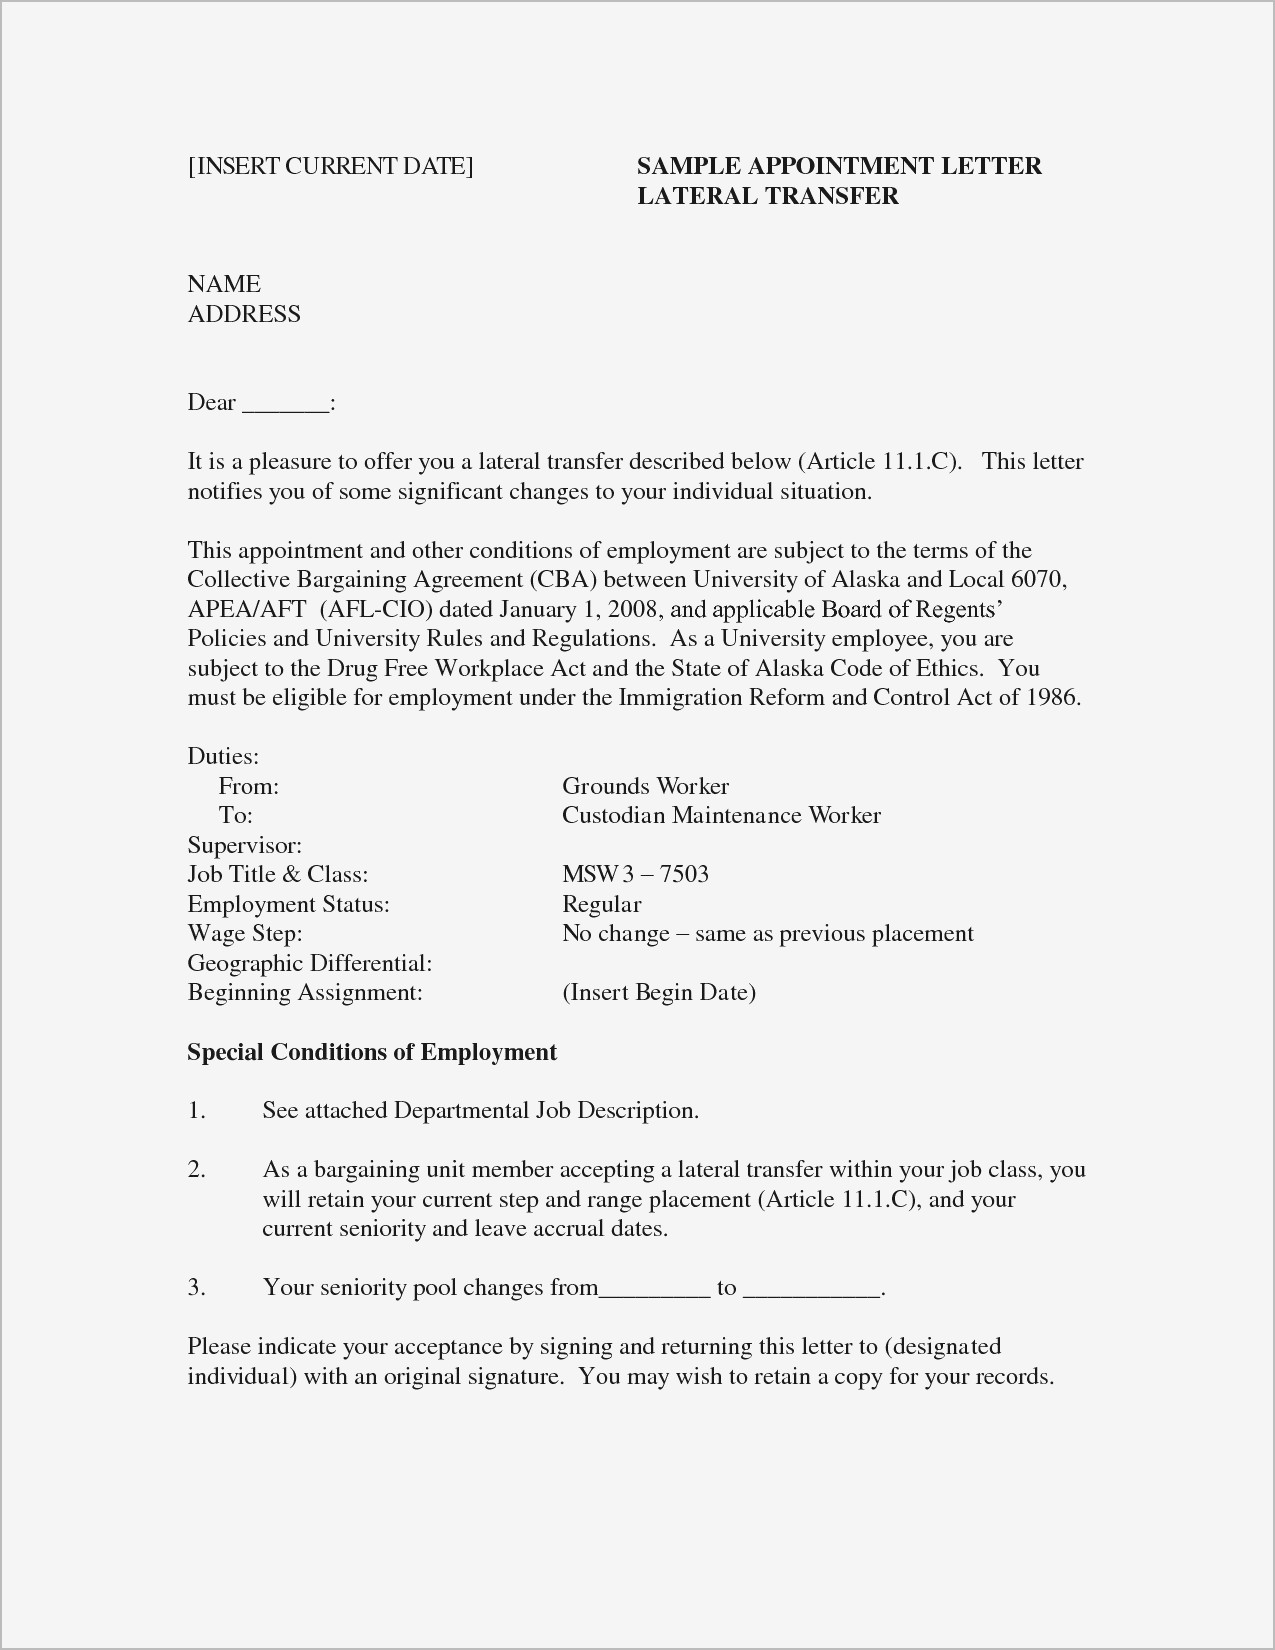 cover letter outline template example-Cover Letter Template Word 2014 Fresh Relocation Cover Letters Od Specialist Sample Resume Portfolio 15-i